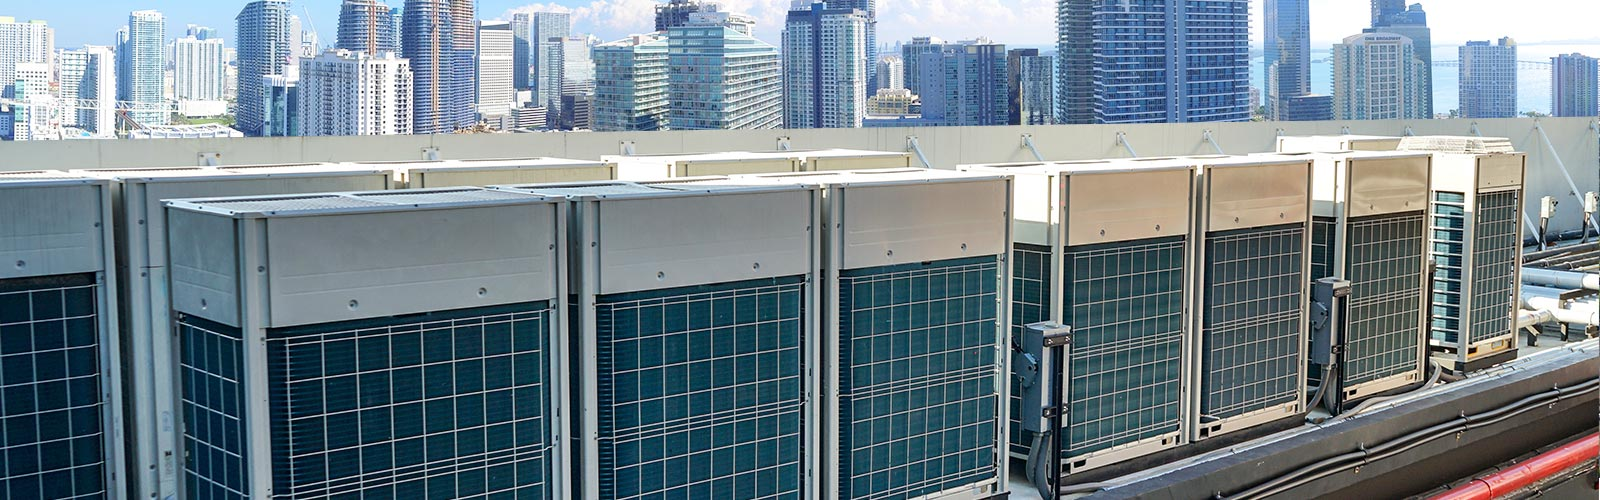 Commercial Air Conditioners on Roof of Miami Building